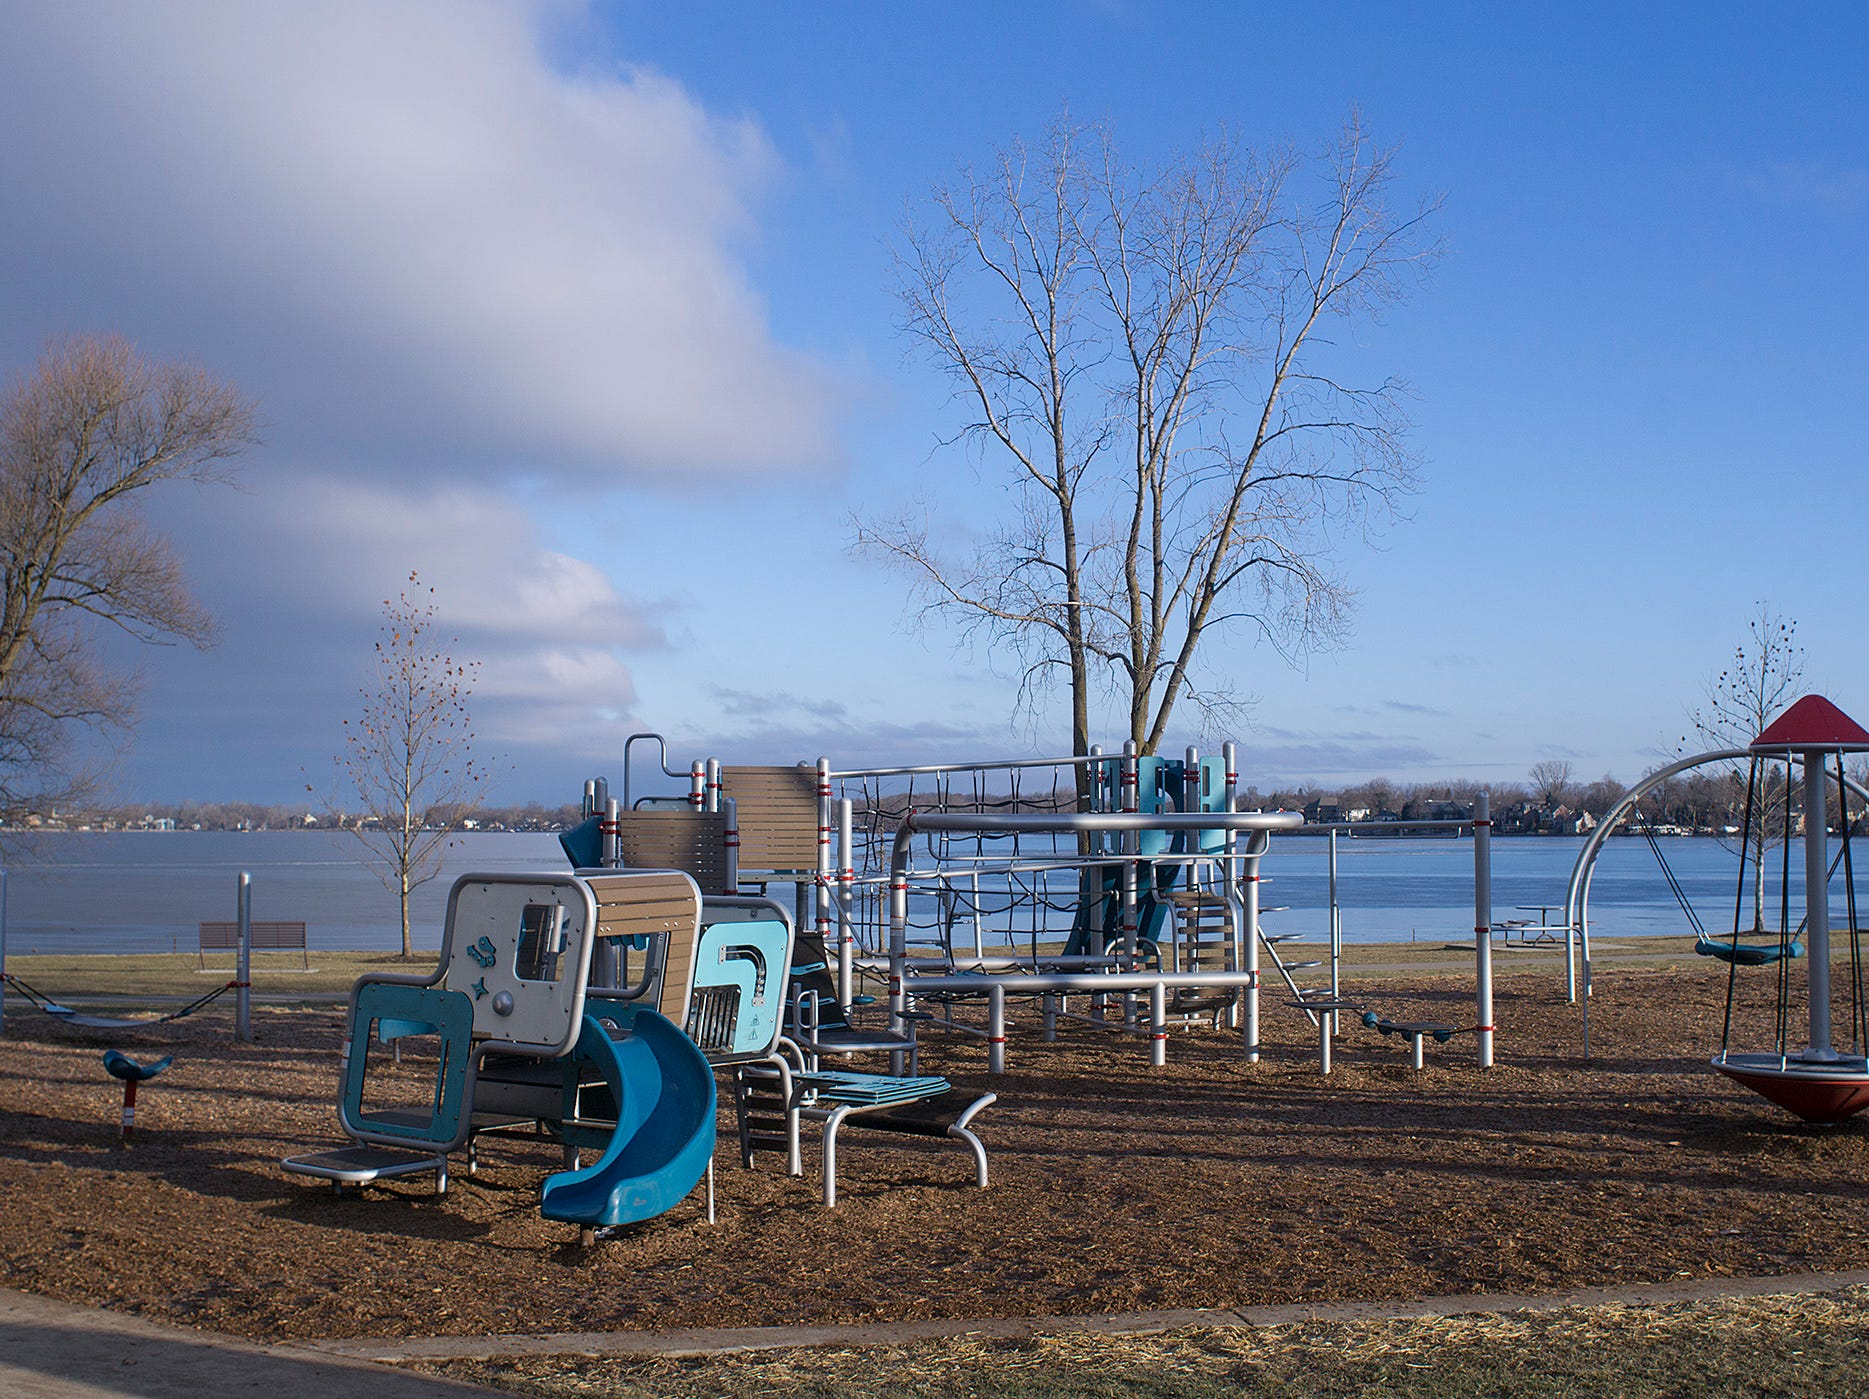 New playground equipment on the shore of Walled Lake.